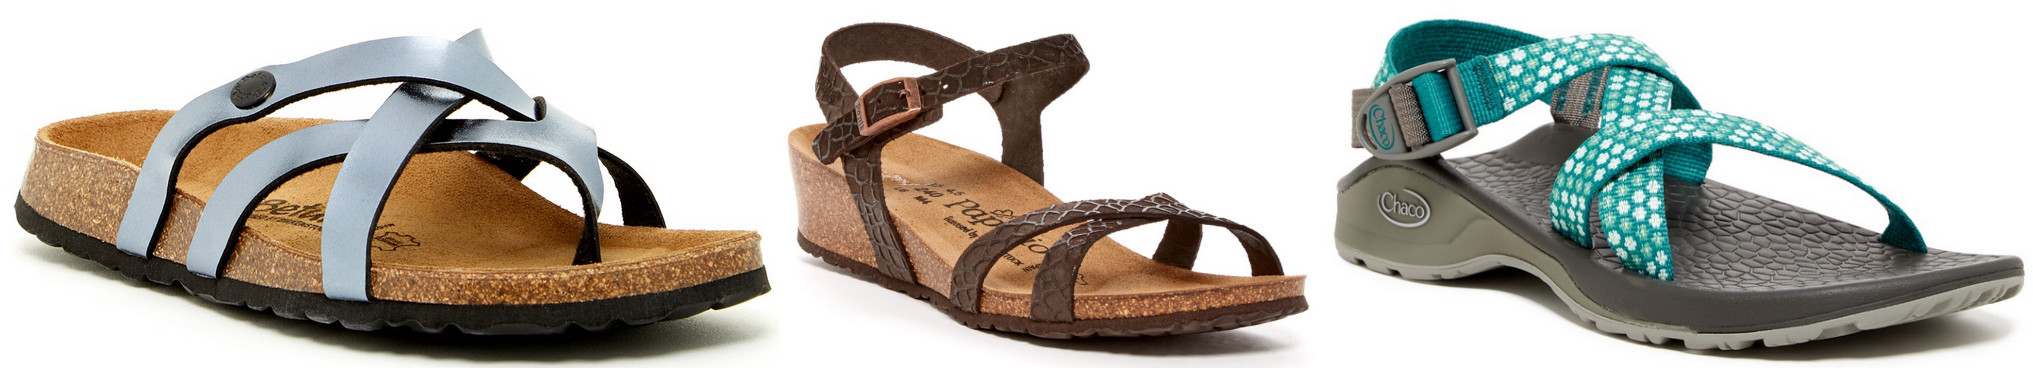 e4e34225781c Nordstrom Rack  Up to 50% Off Chaco Sandals   Shoes